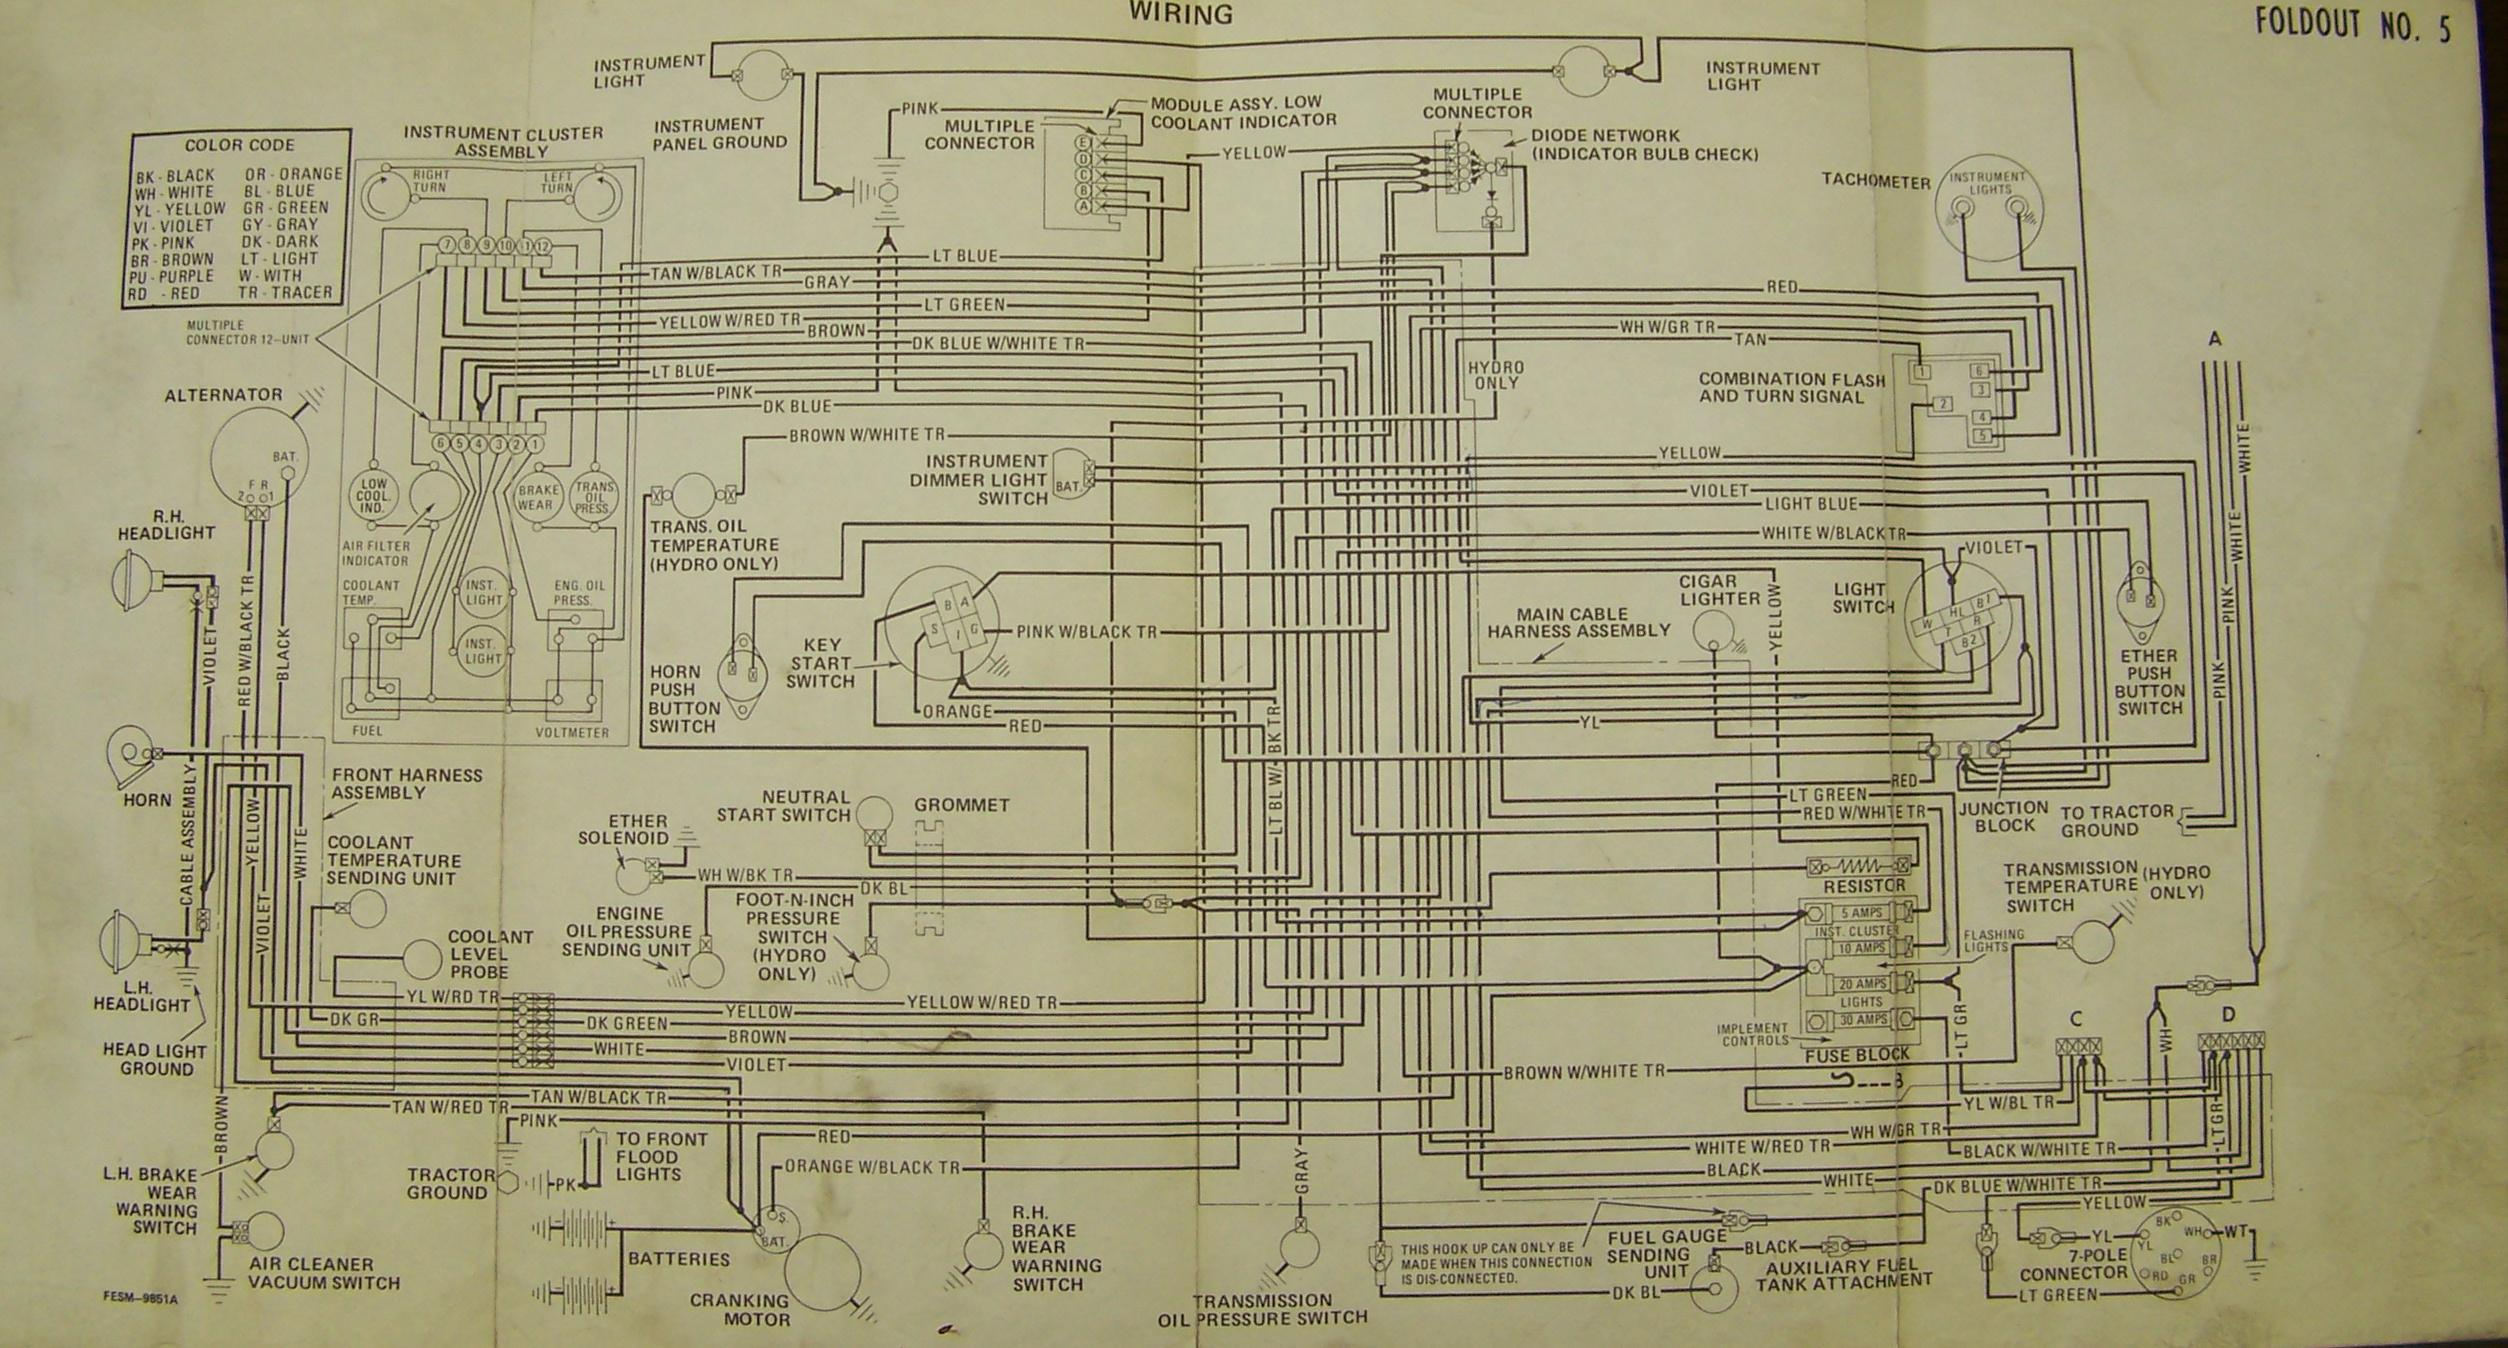 Sterling Tractor Starter Wiring Diagram All 1978 Gmc Van Ignition Switch Fuse Box Library Kubota Diagrams